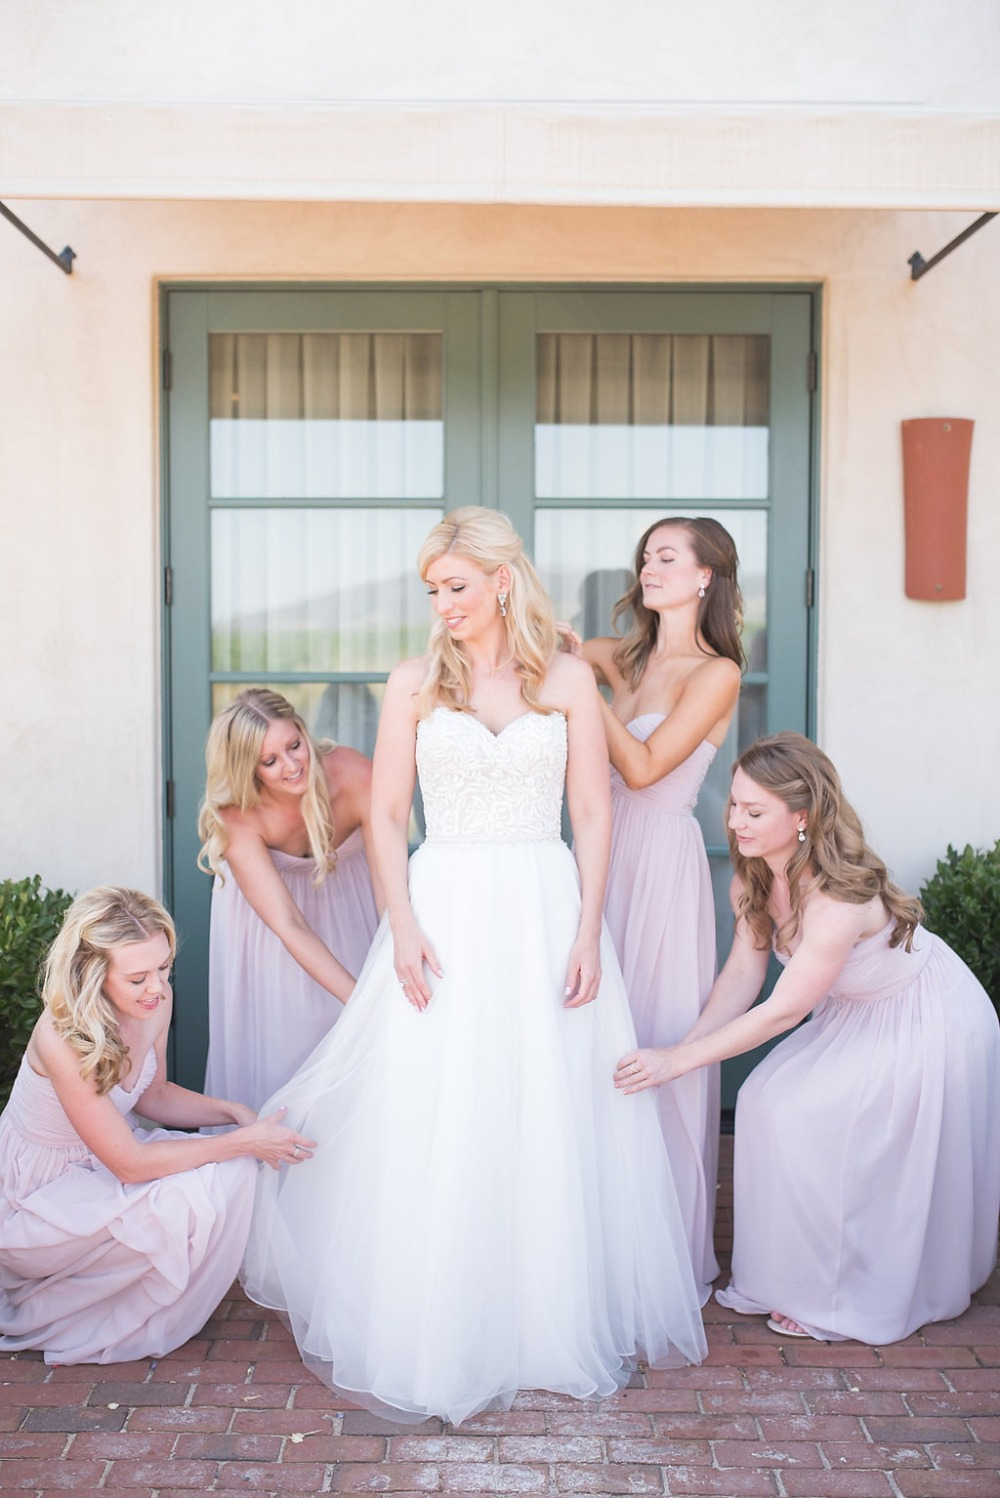 the bride in a beautiful Madison James wedding dress